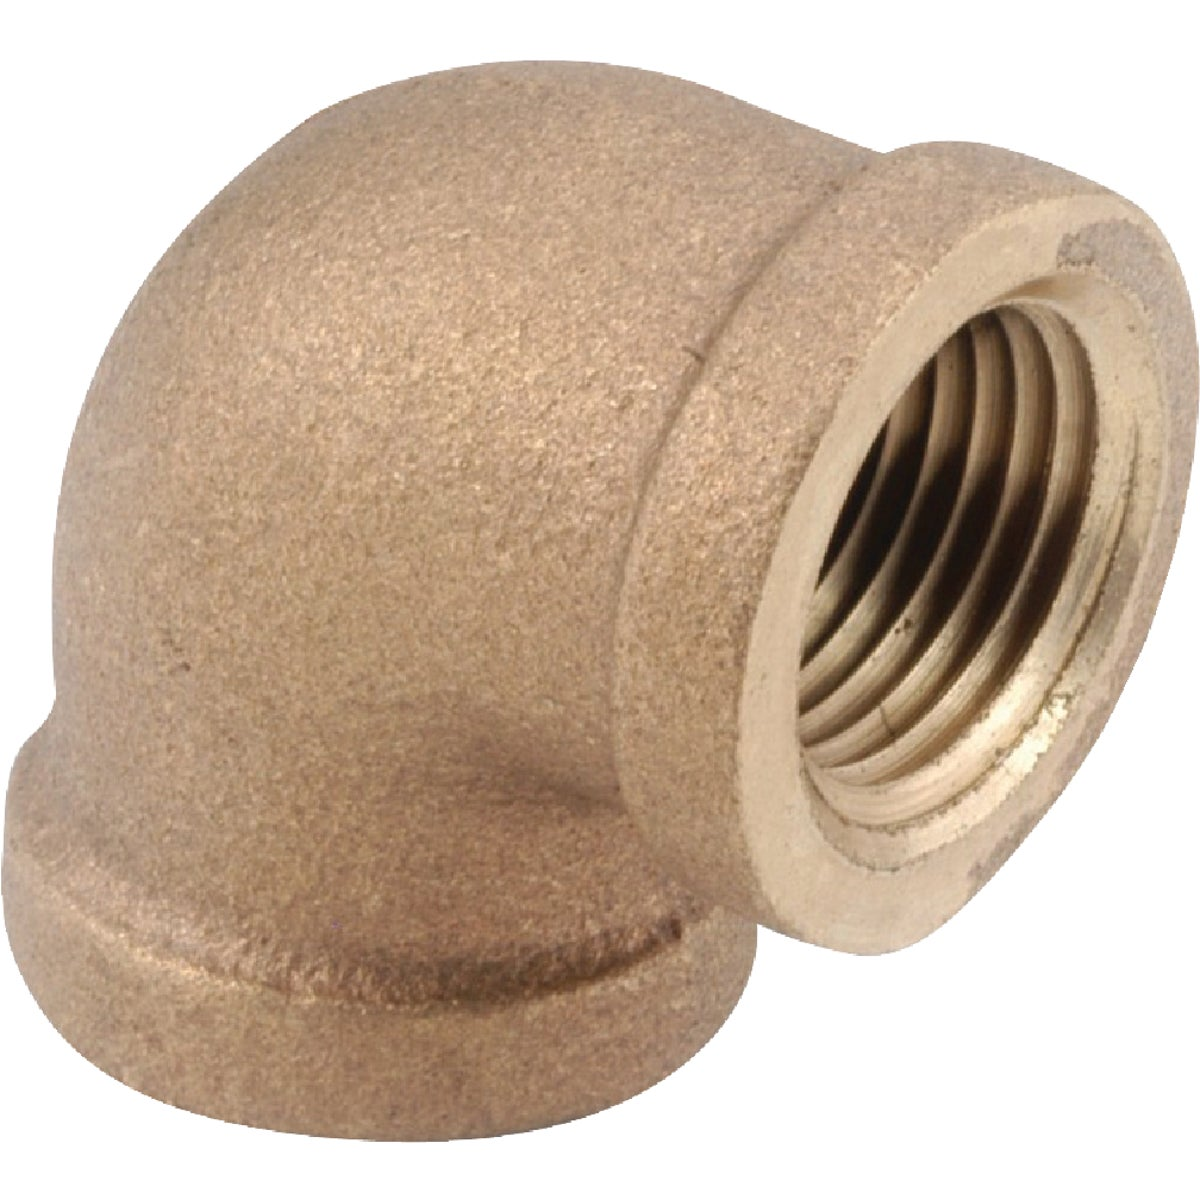 "1-1/4"" 90D BRASS ELBOW - 738100-20 by Anderson Metals Corp"